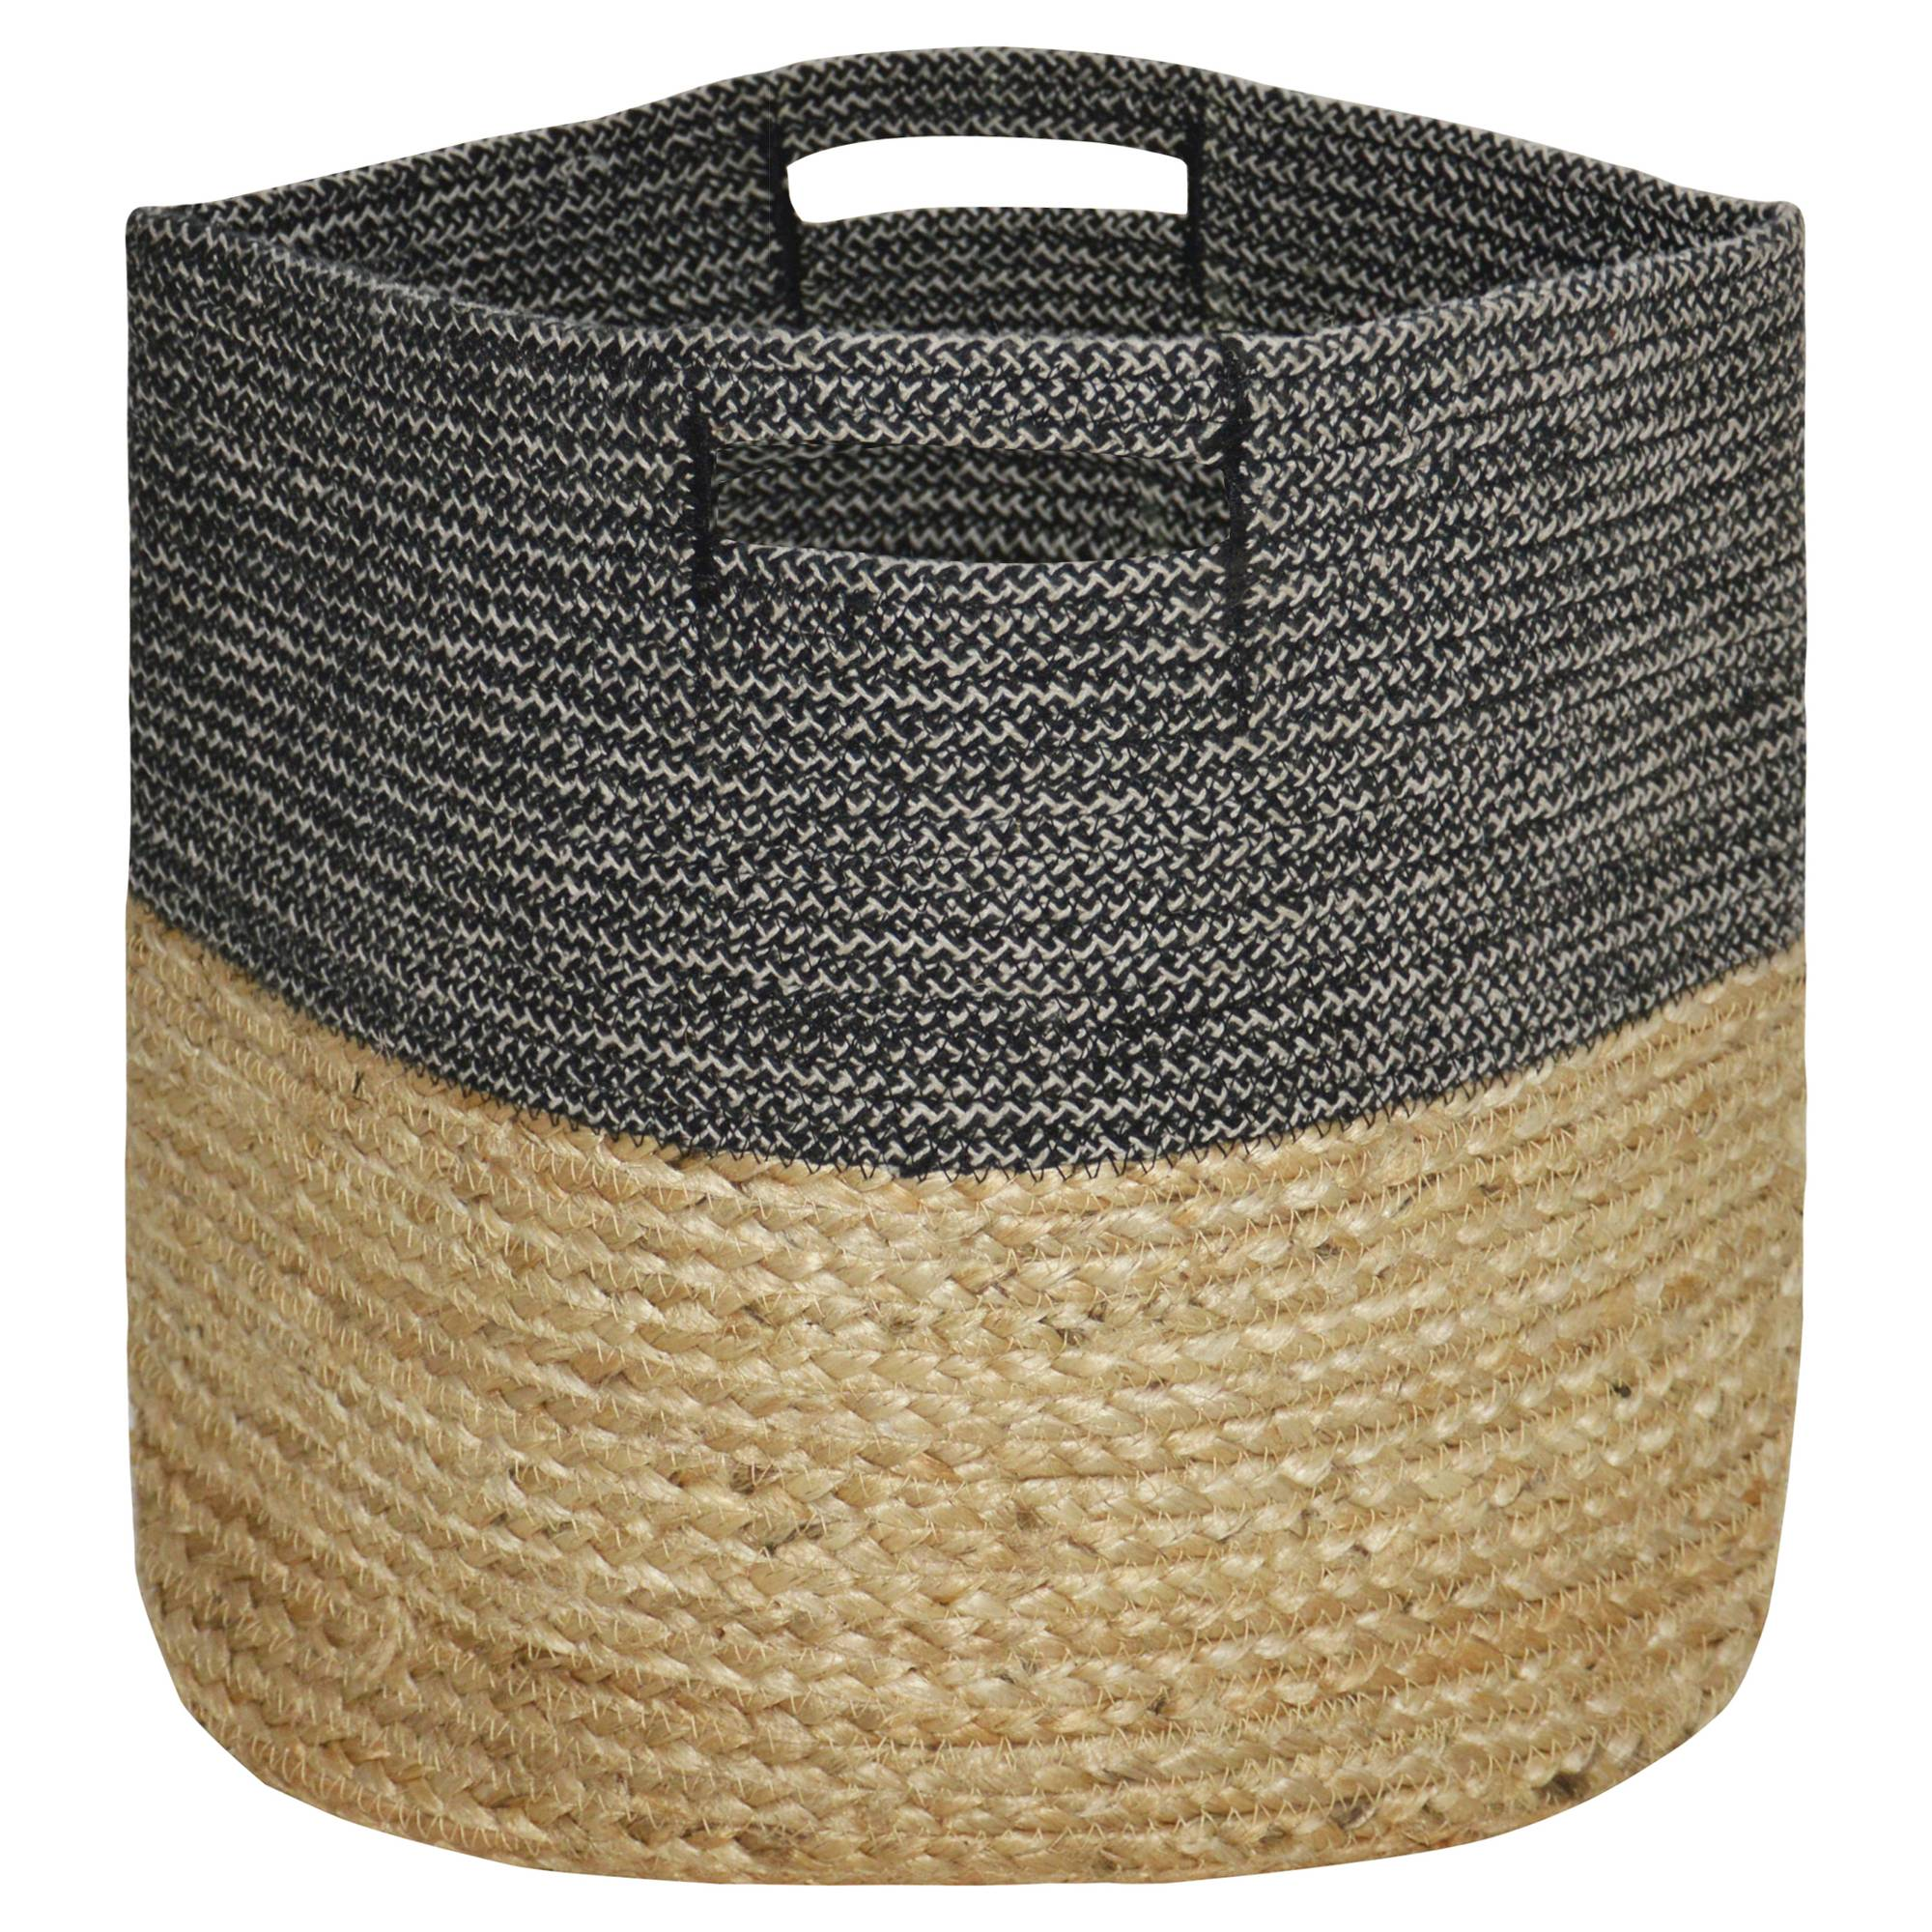 Large Round Woven Storage Basket, Dark Grey